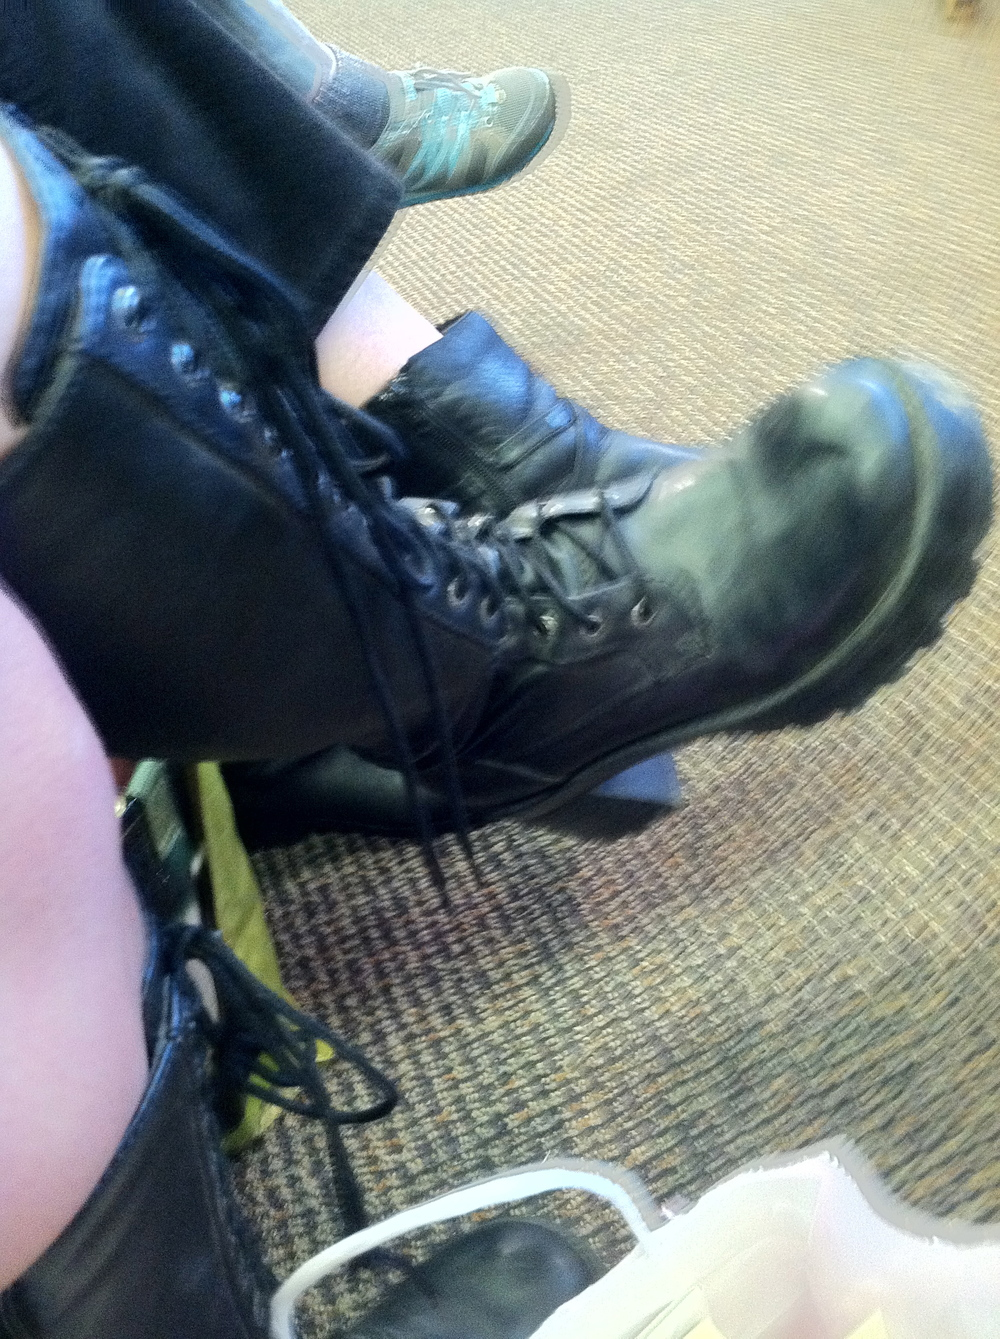 Shoe watch - Laura's boots!